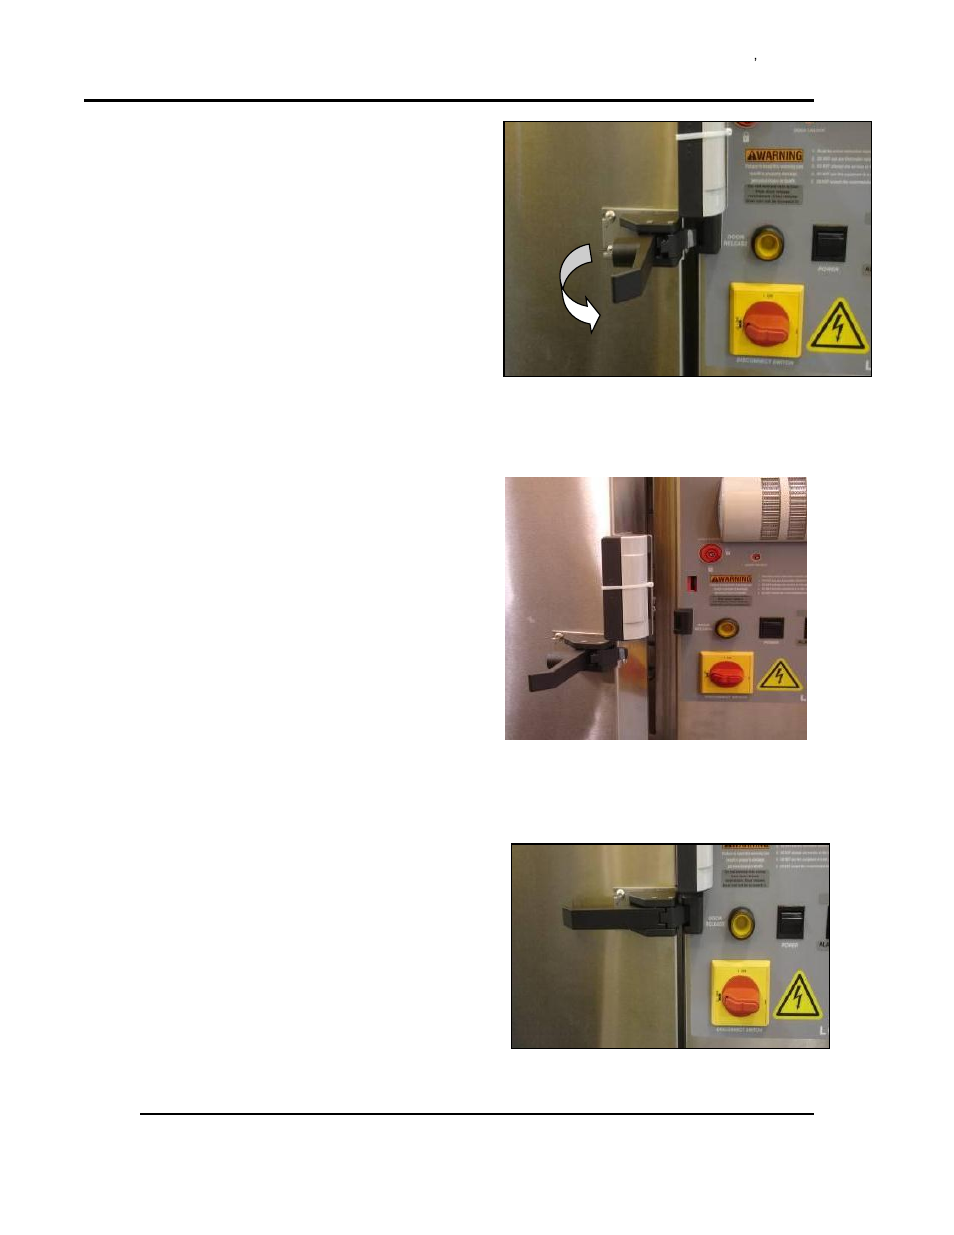 To Close The Lcc Lcd1 52v 1 51nv Oven Door Despatch Stackable Electronic Release Lcd 4 User Manual Page 42 67